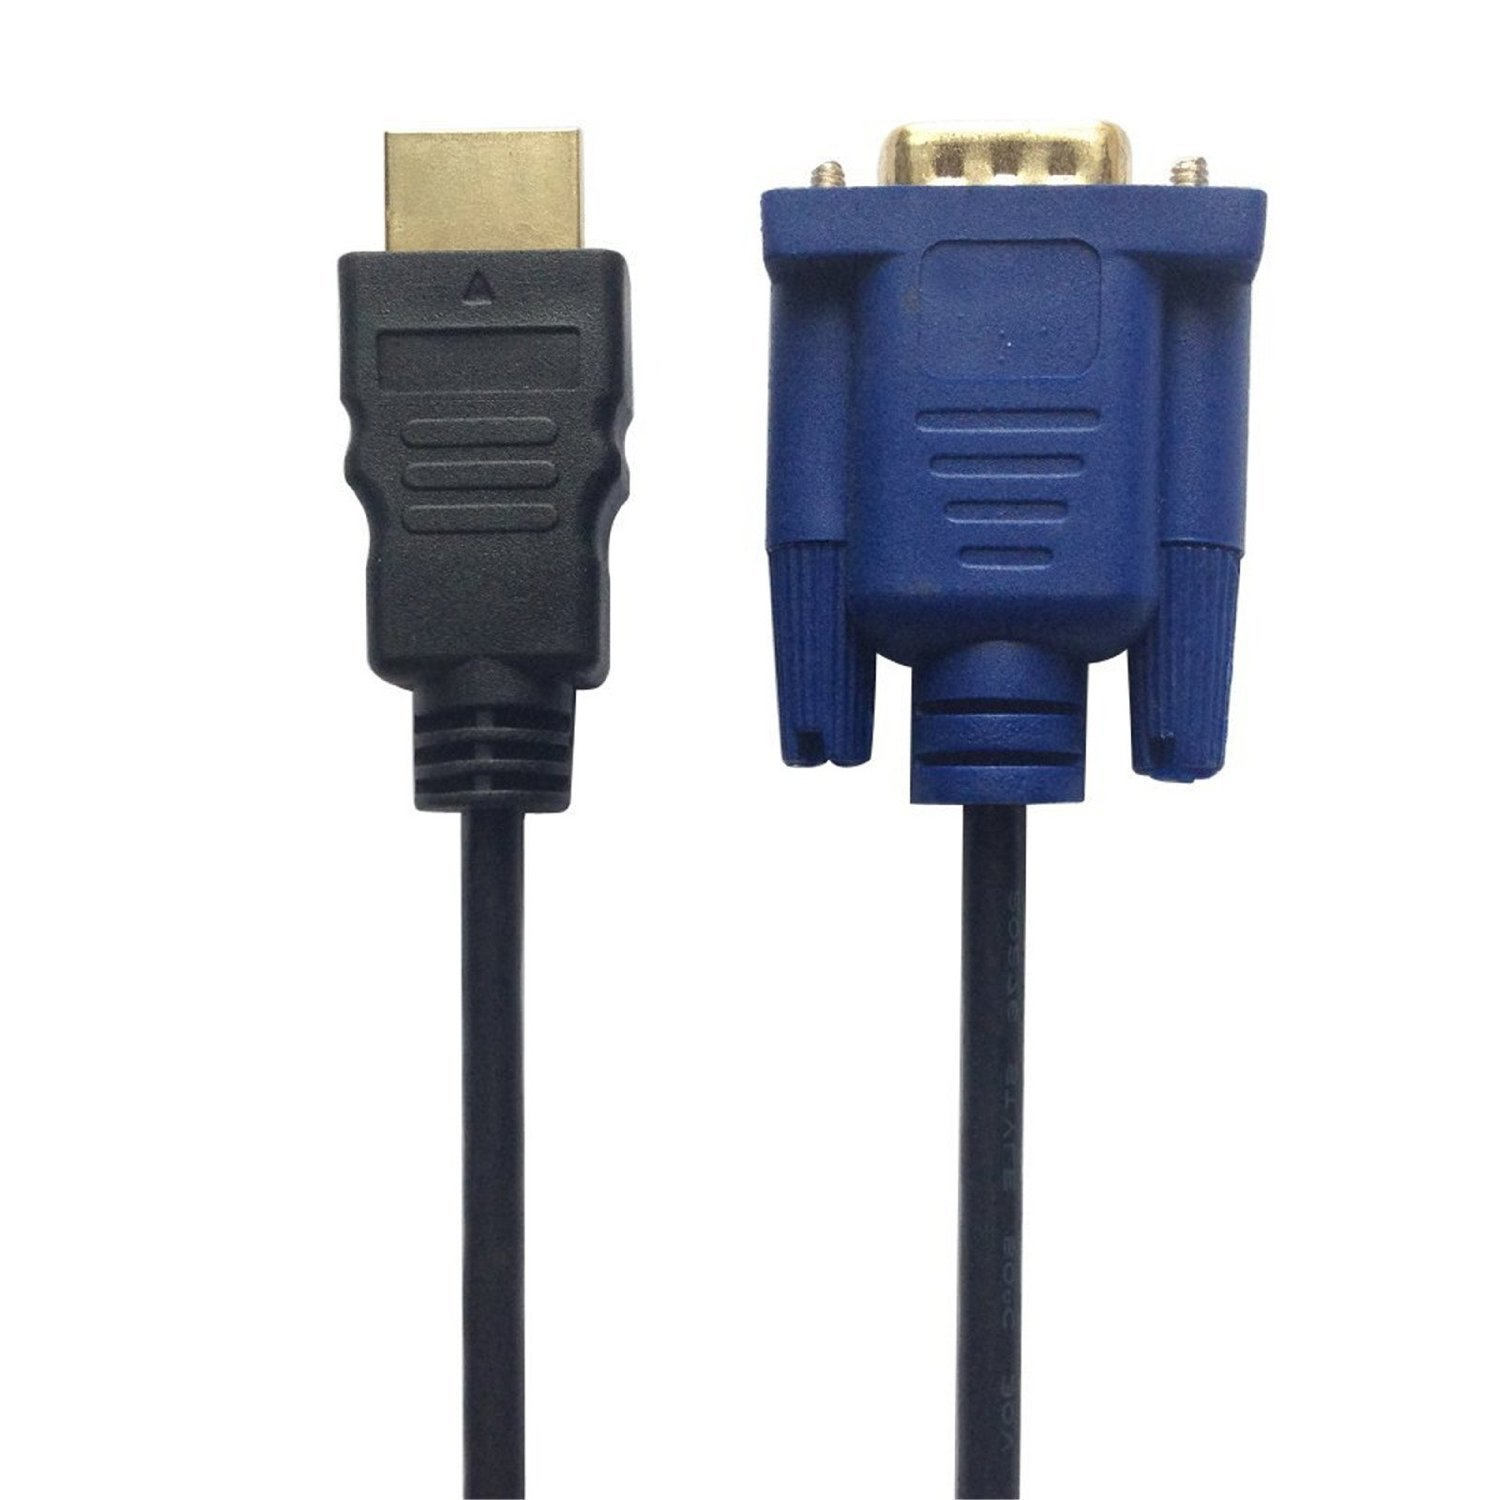 HDMI to VGA Cable 6ft, Candle2017 1.8 Meters HDMI Male to VGA Male D-SUB HD 15 Pin M/M Adapter Connector Cable (blue)